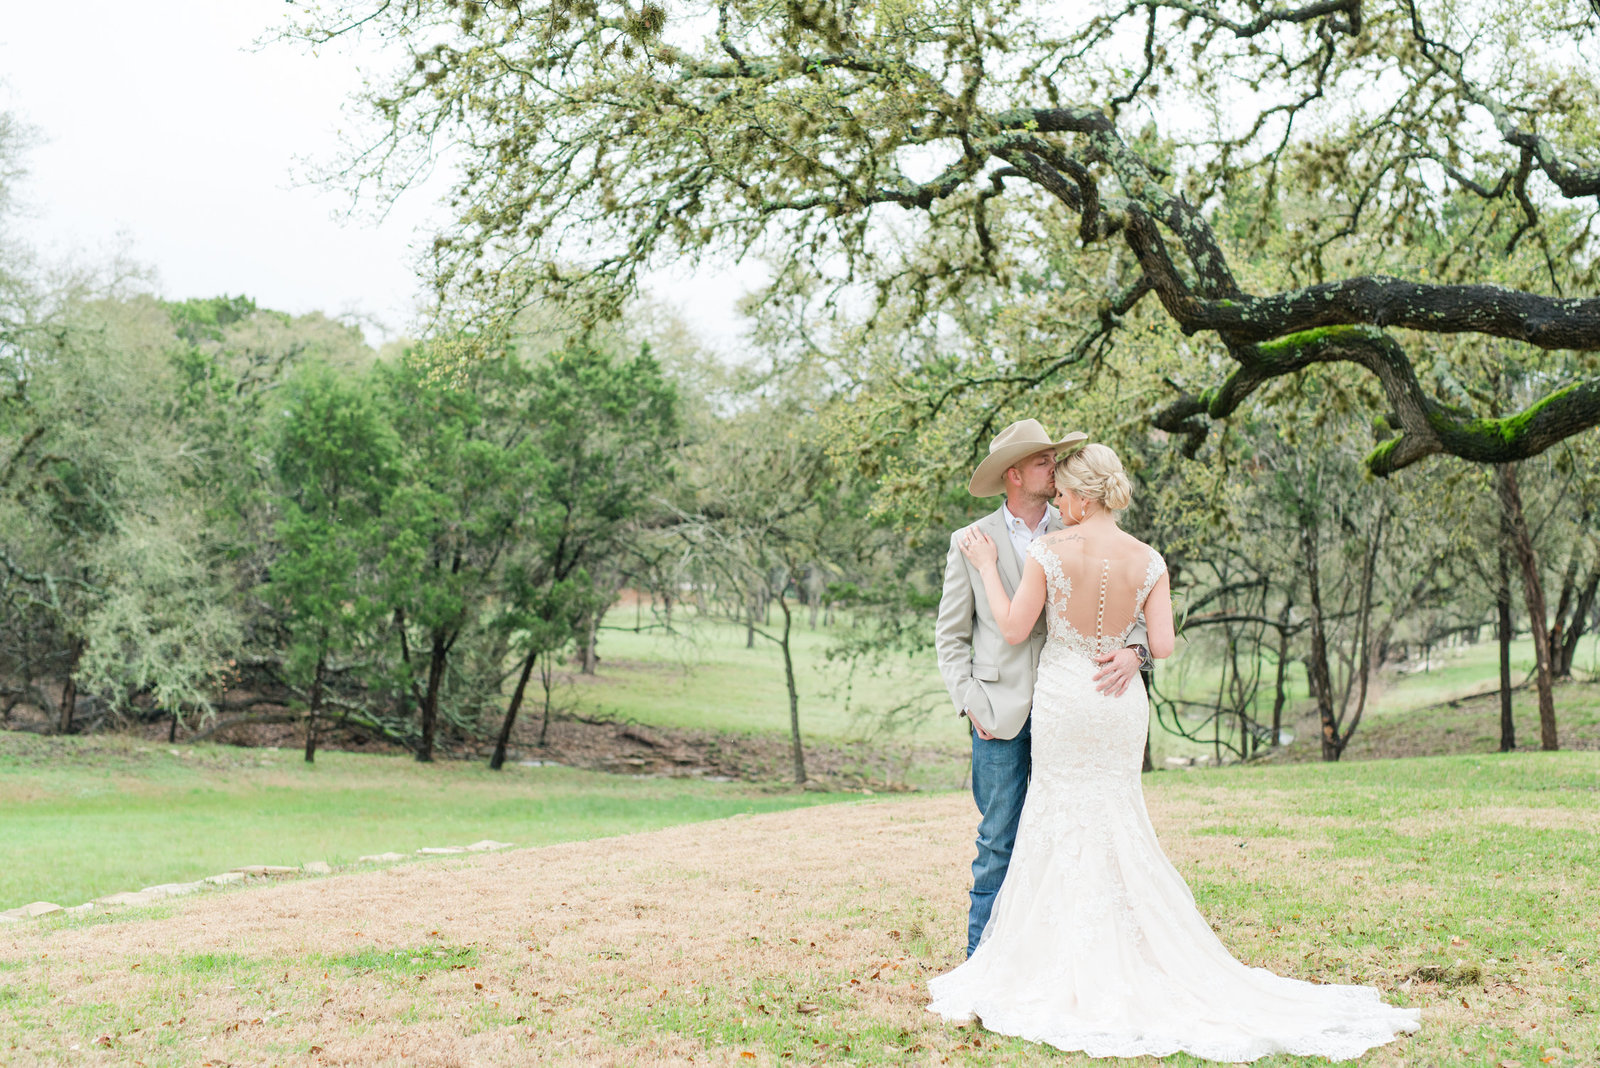 Groom in jeans and cowboy hat kisses bride's forehead at Rustic Ranch